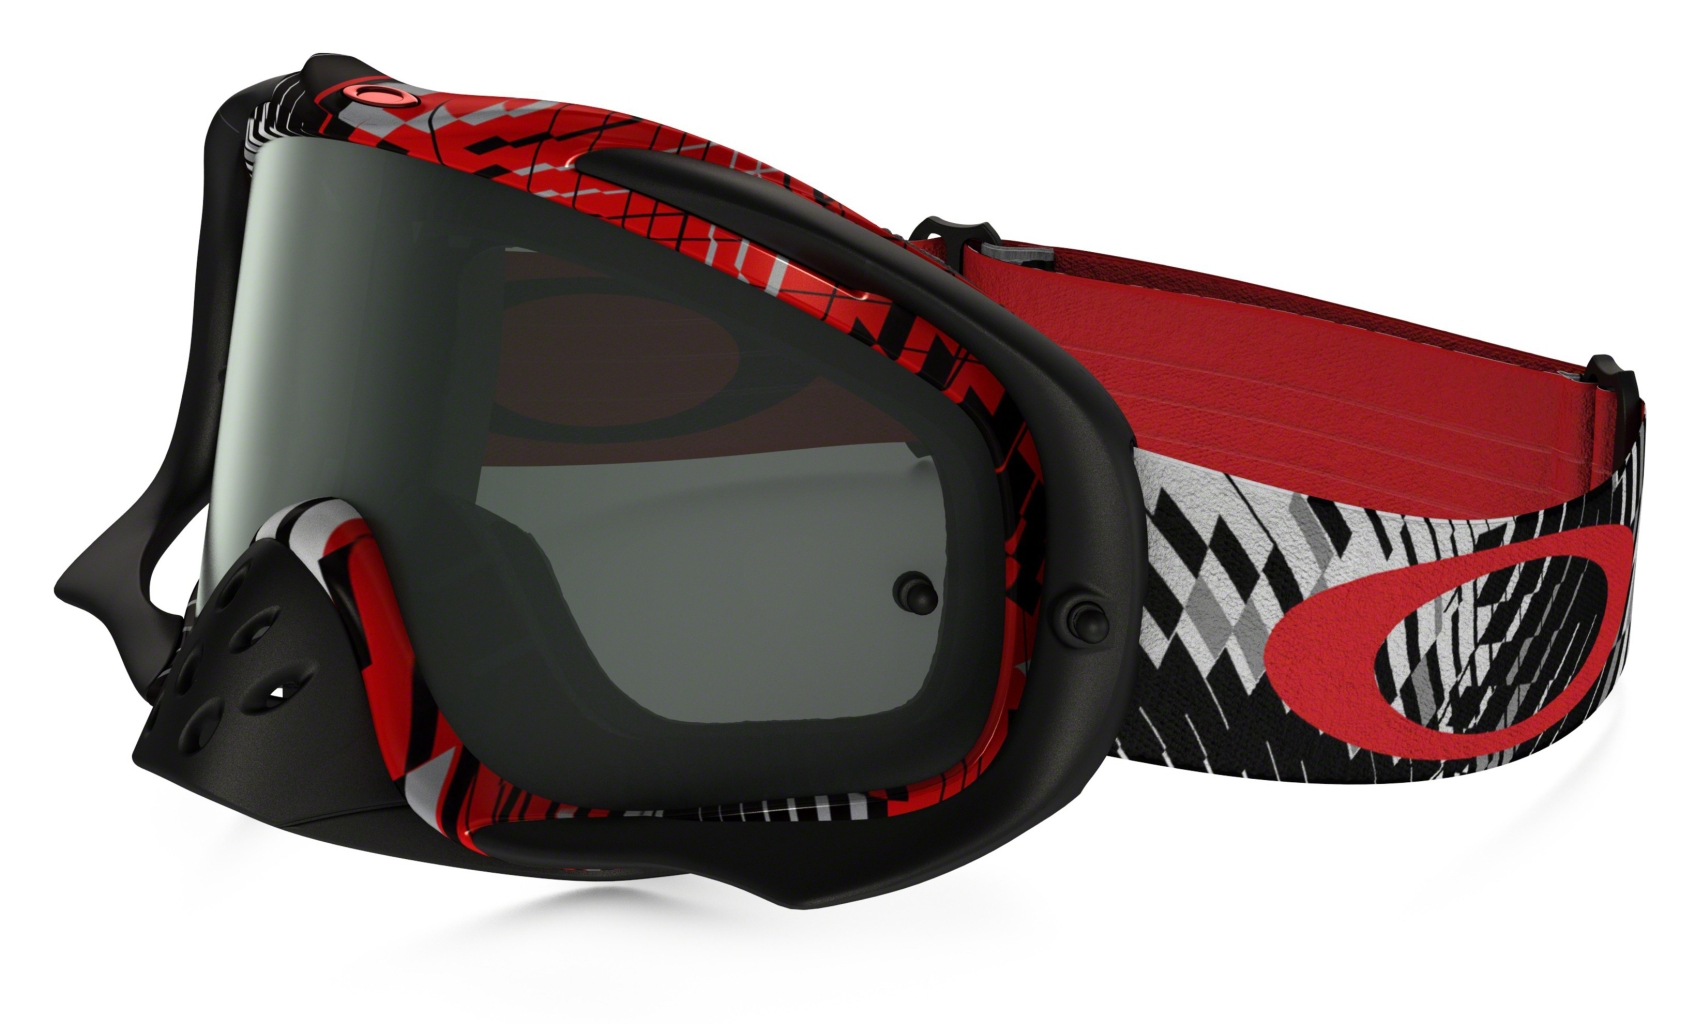 Oakley Crowbar Mx Podium Check Red/Blk w/Dk Gry-30